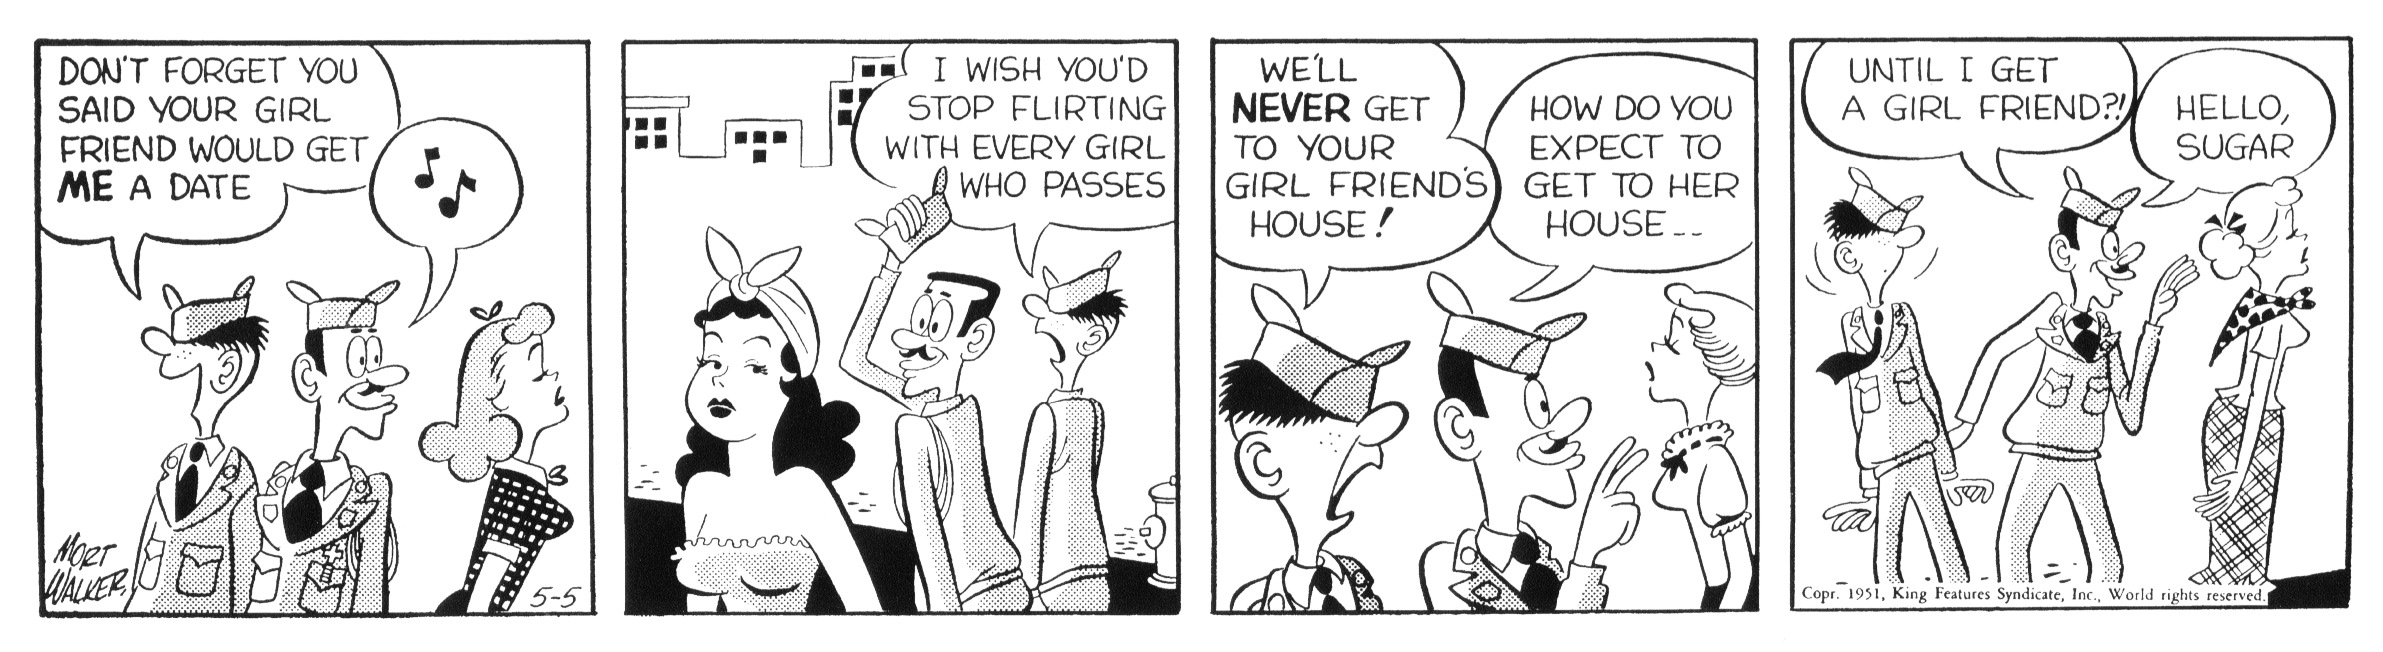 Beetle Bailey daily strip, May 5, 1951.